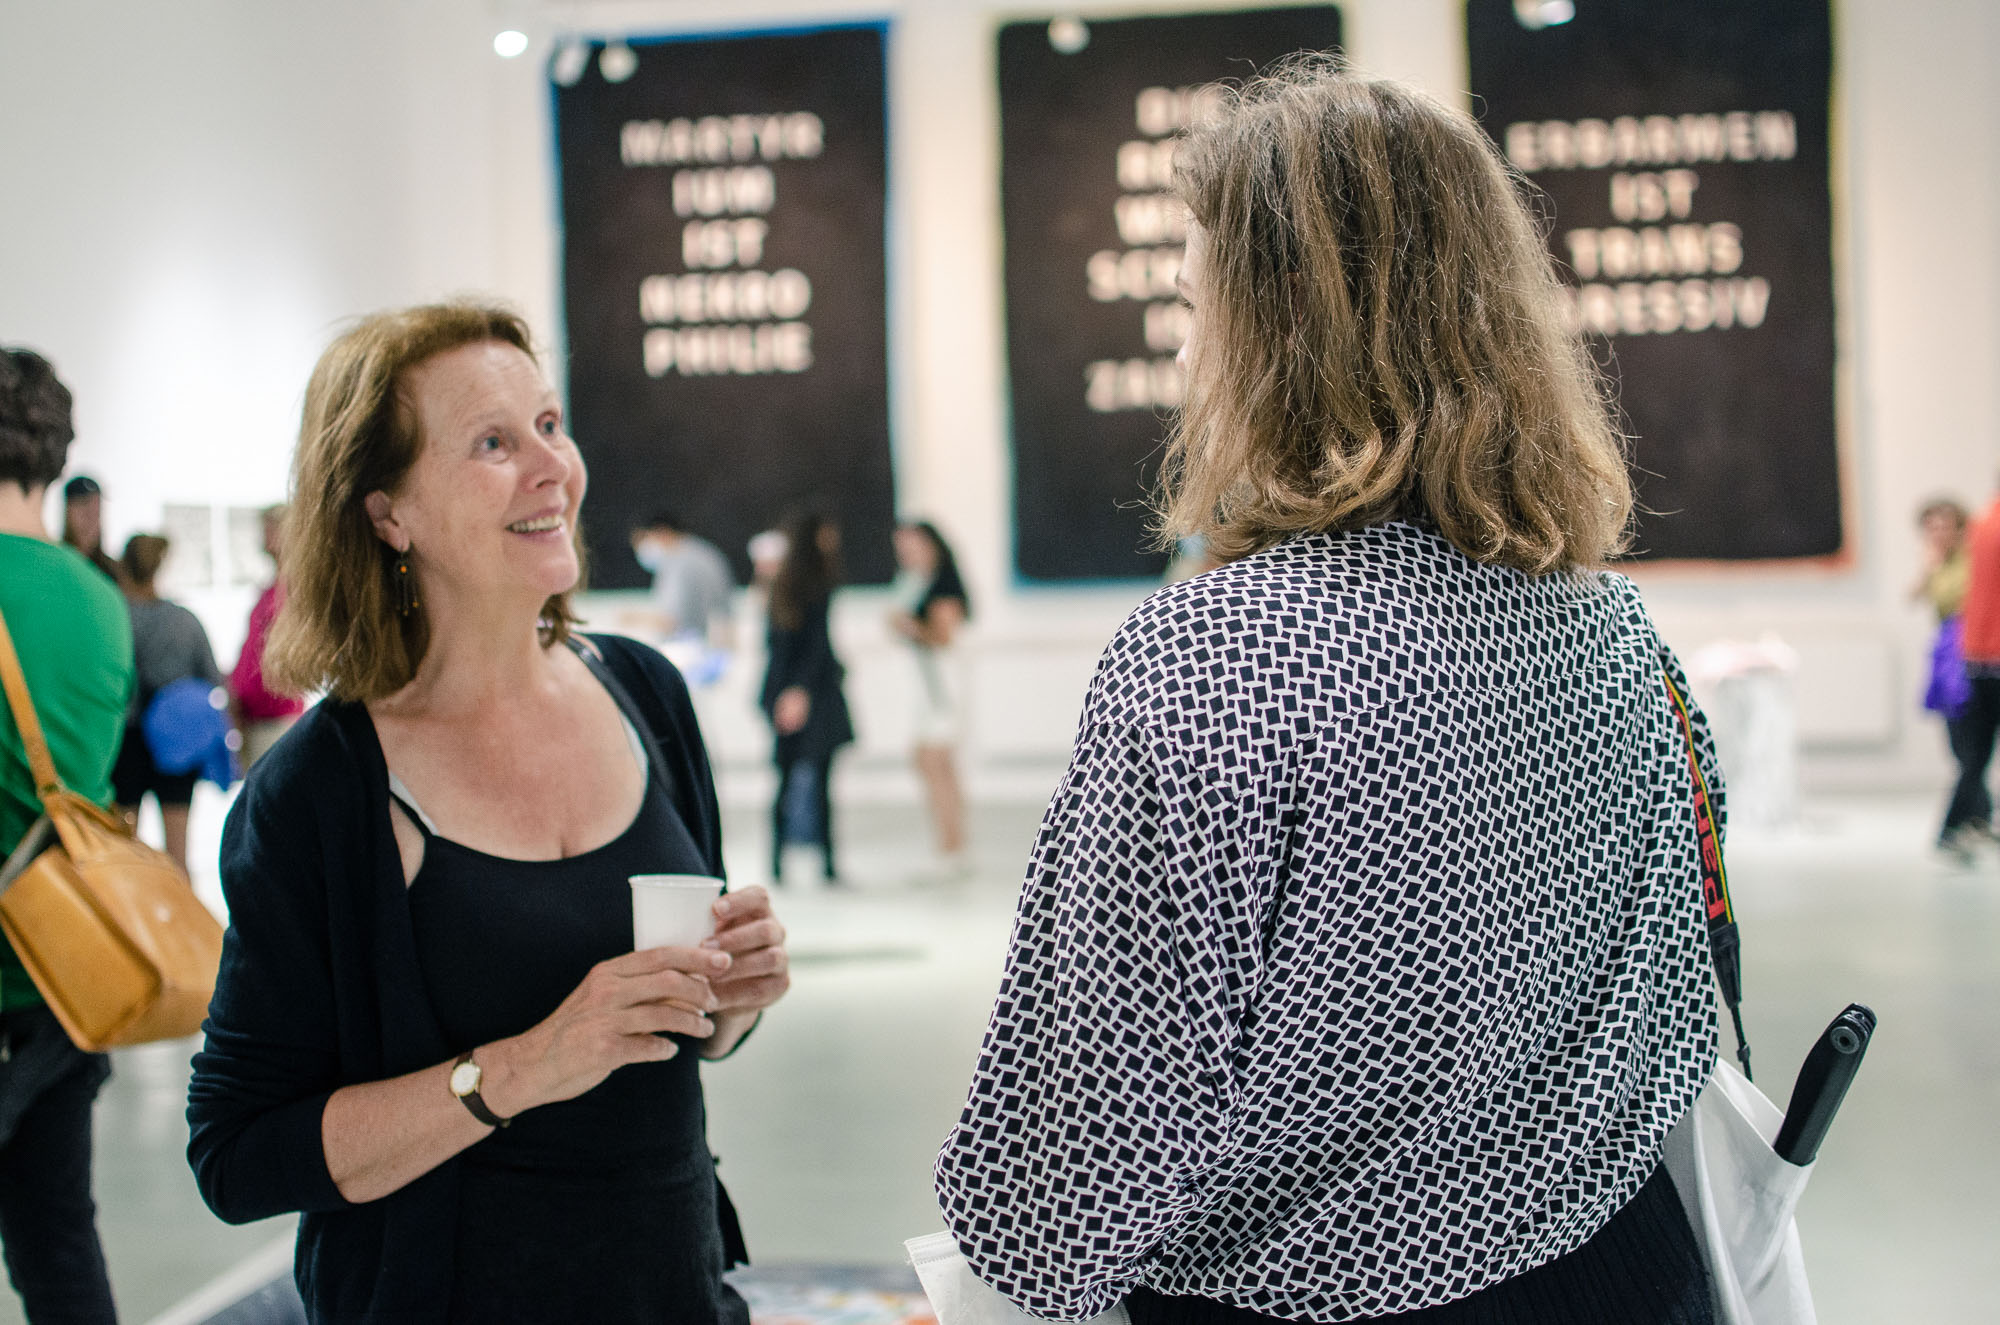 PKRD-48-Airy-Democratic-Spirituality-vernissage-PK-at-Alte-Handlesschule-20.08.21-Fanni-Papp-for-PK-15